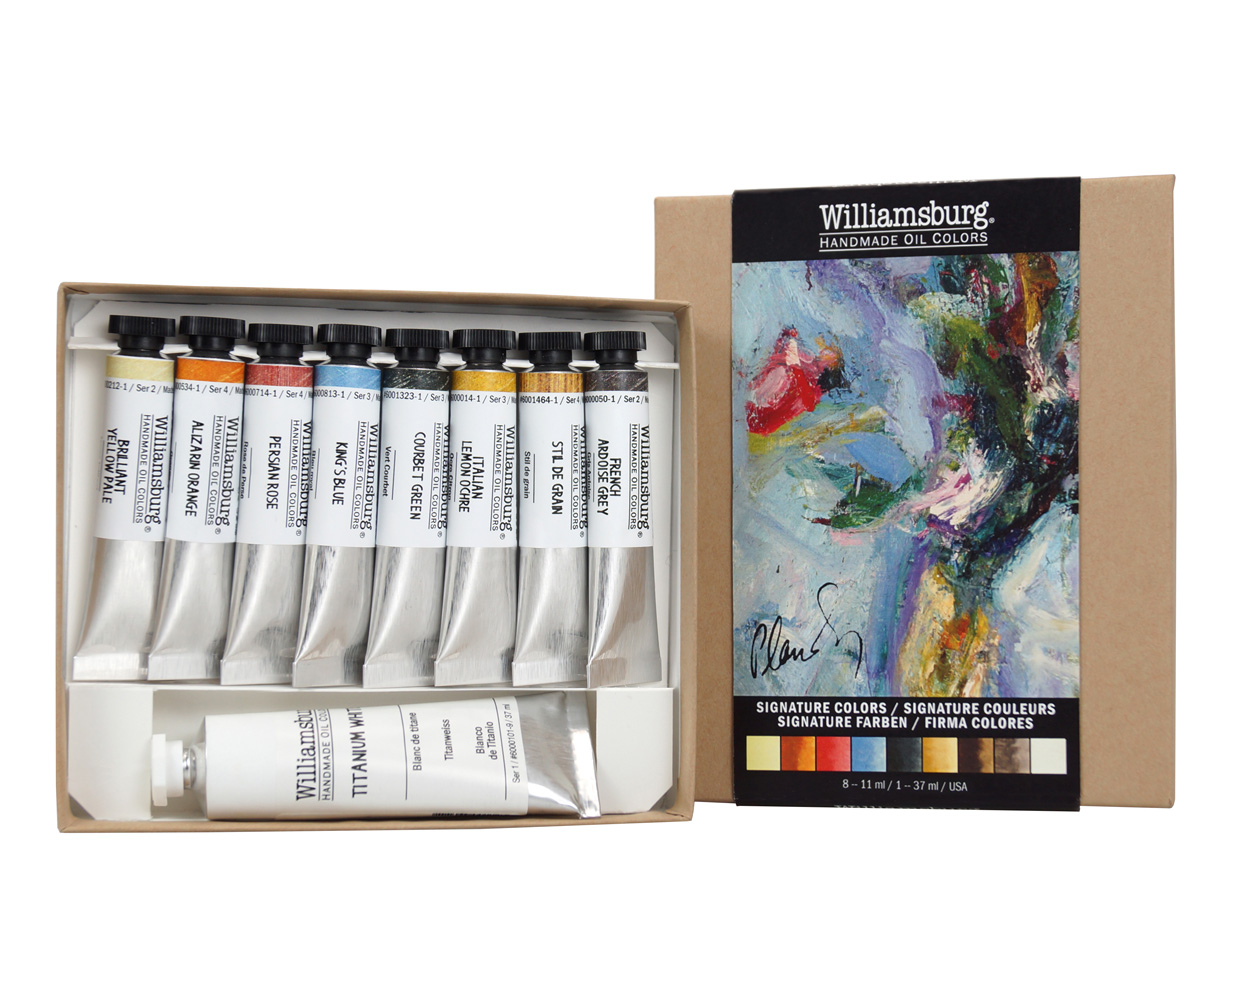 Williamsburg Oil Signature Colors Set